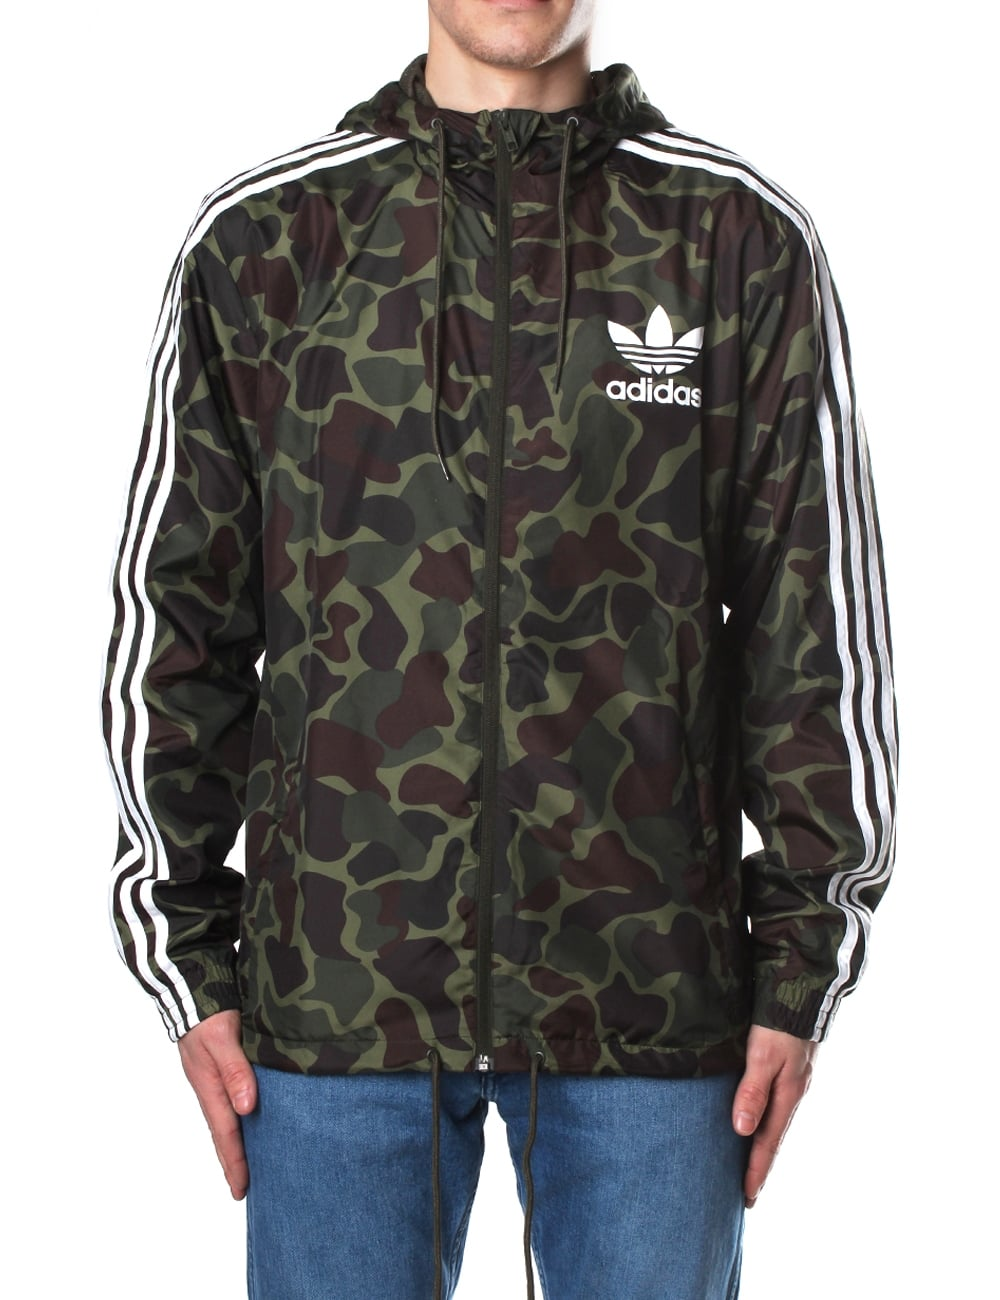 adidas camo men 39 s windbreaker. Black Bedroom Furniture Sets. Home Design Ideas